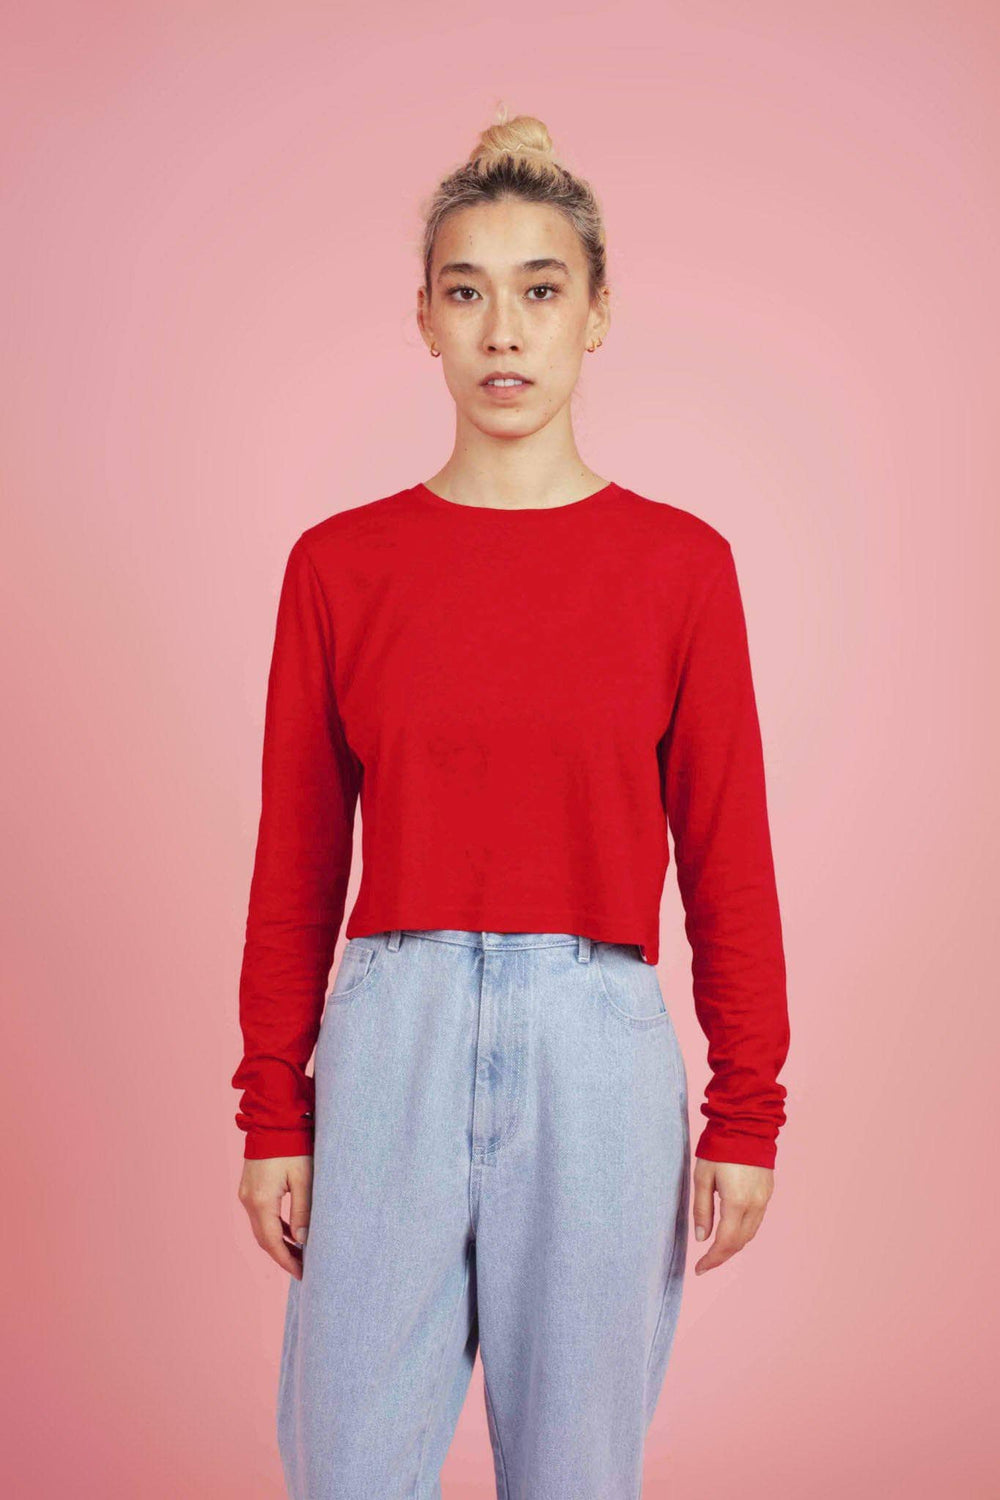 Lucy & Yak Tops Elva SeaCell Cropped Tee in Haute Red